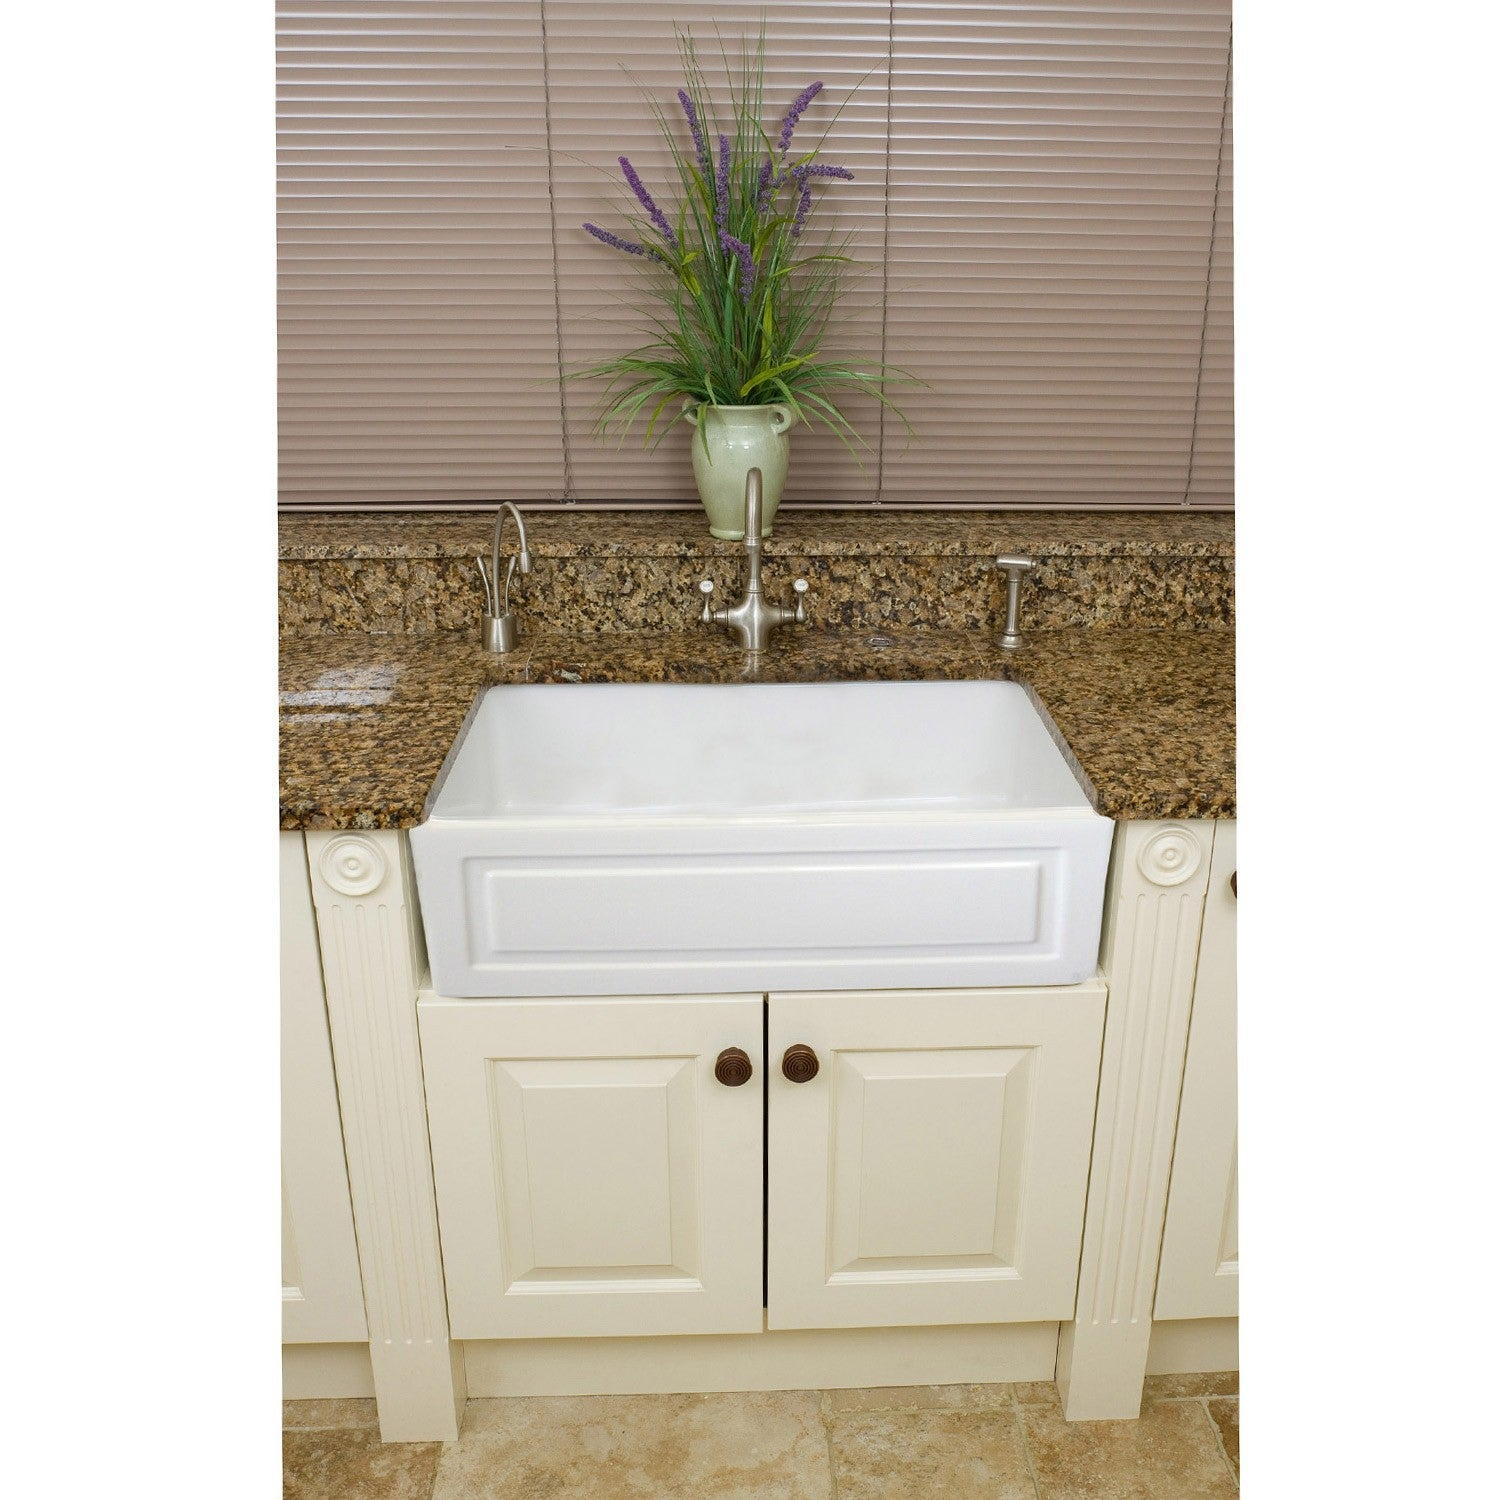 Somette Fireclay French 29 inch White Farmhouse Kitchen